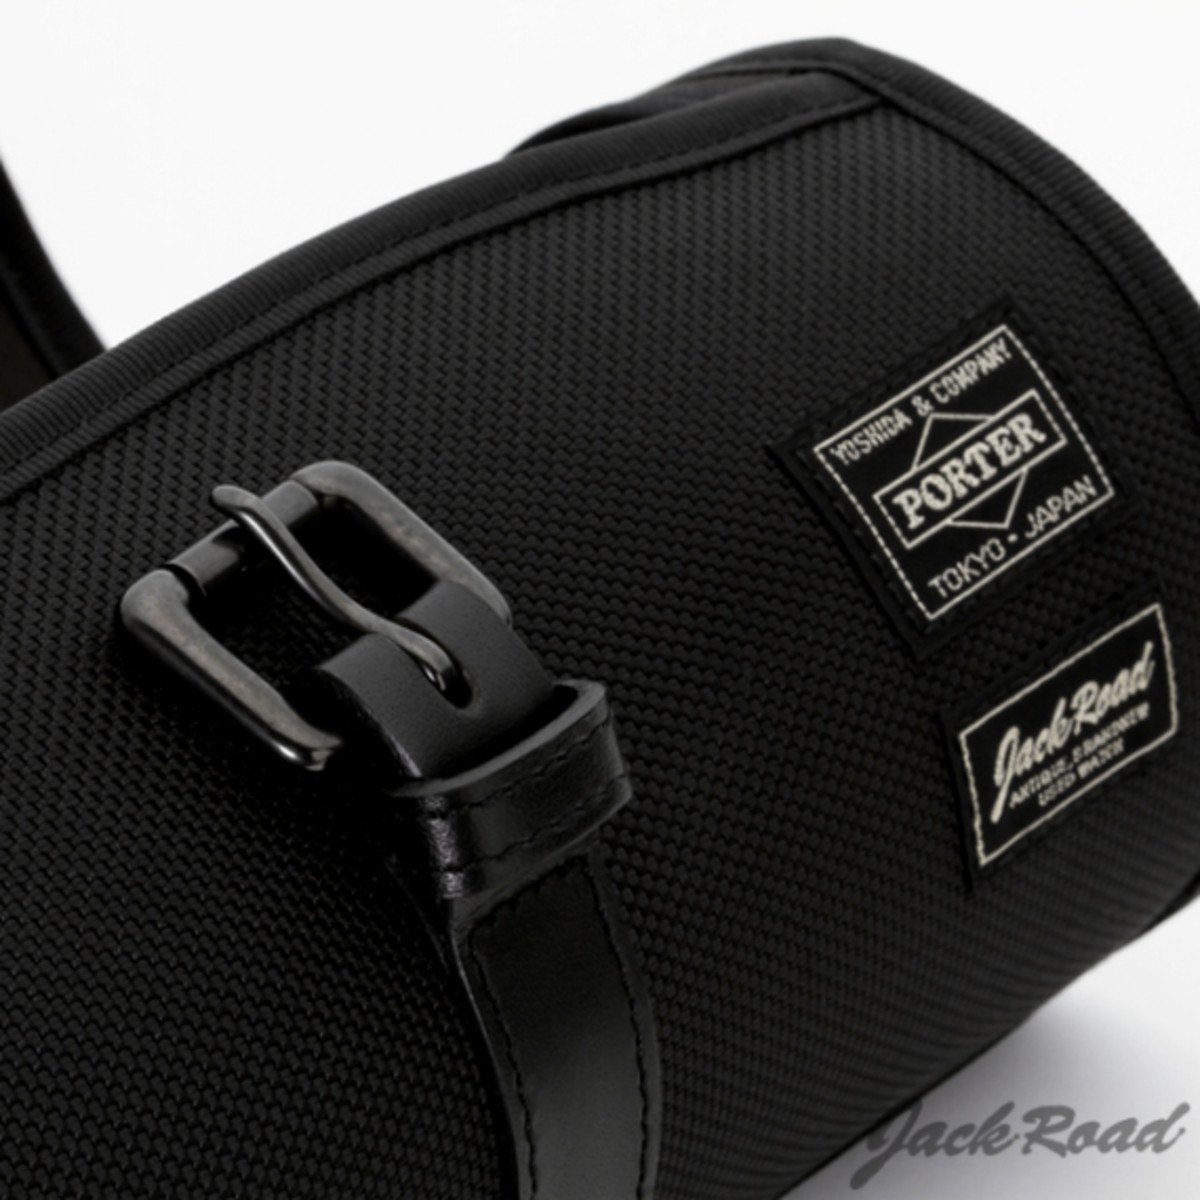 jack-road-porter-watch-carrying-case-13